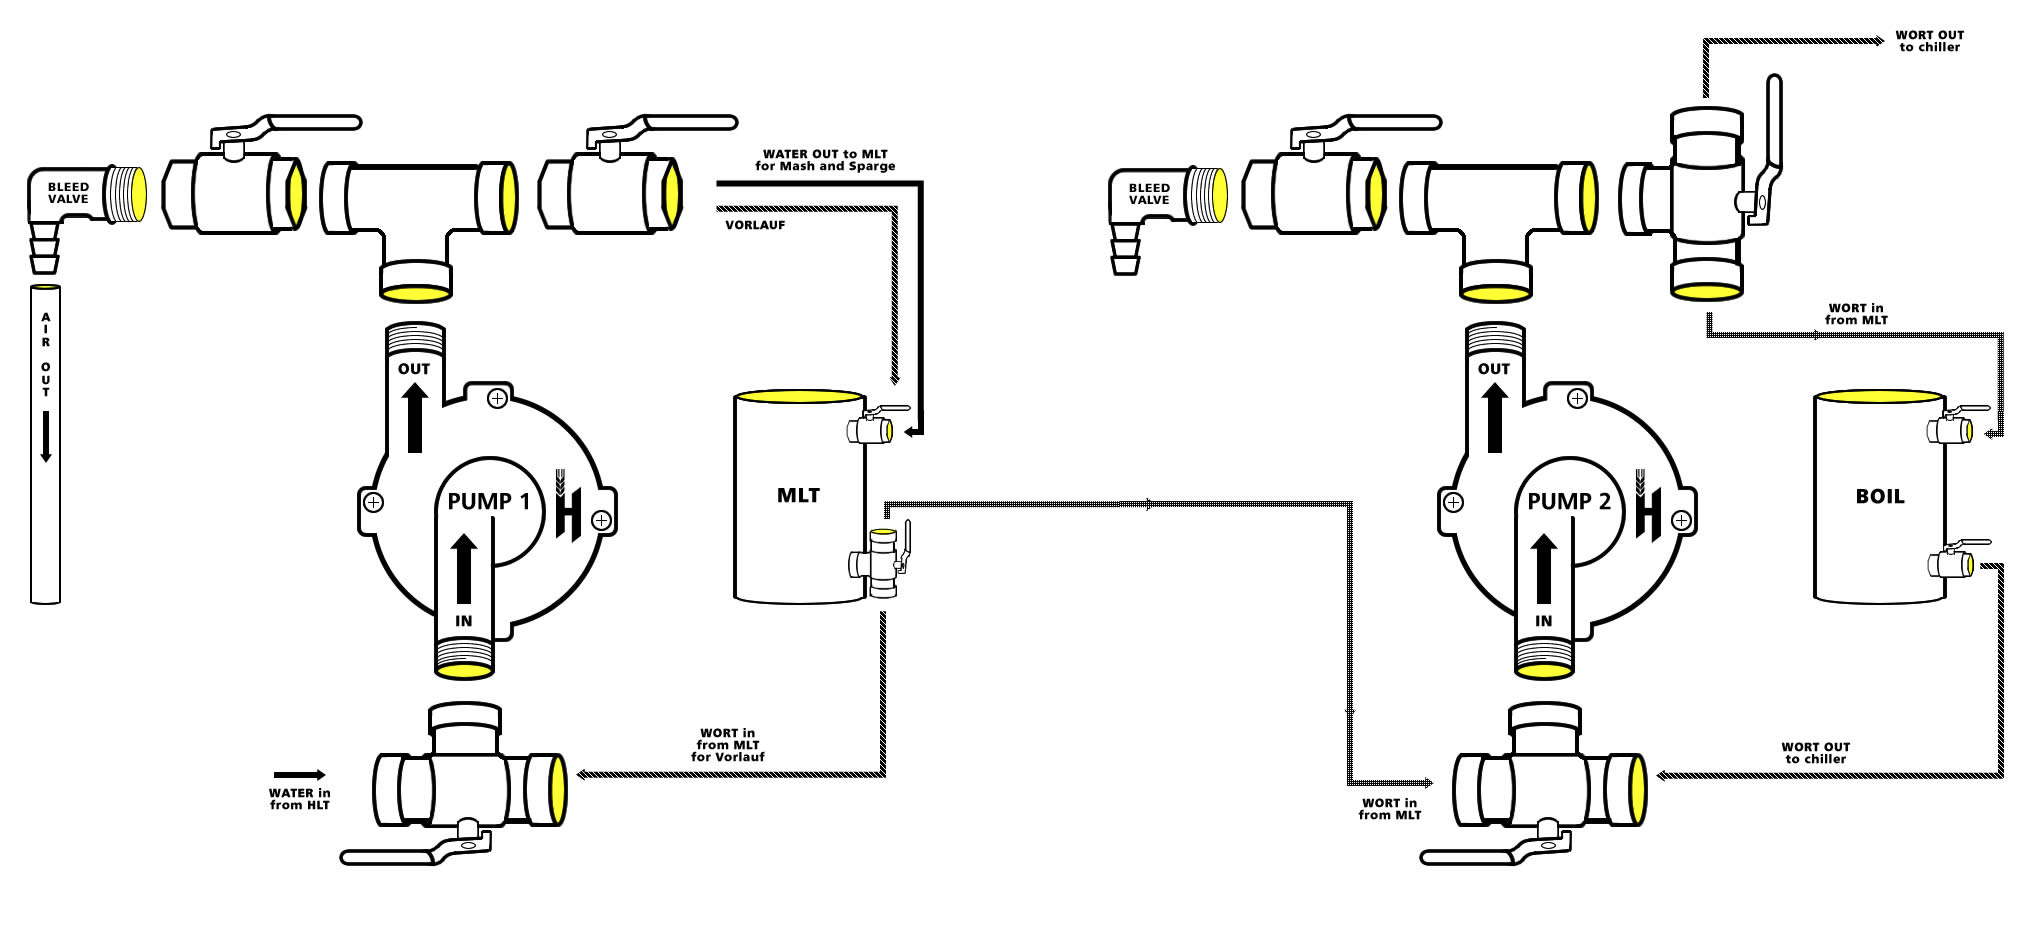 Pid Controller Wiring Diagram For Heat Auto Electrical Alpine 7163 Harness Home Brew Boil Kettle 36